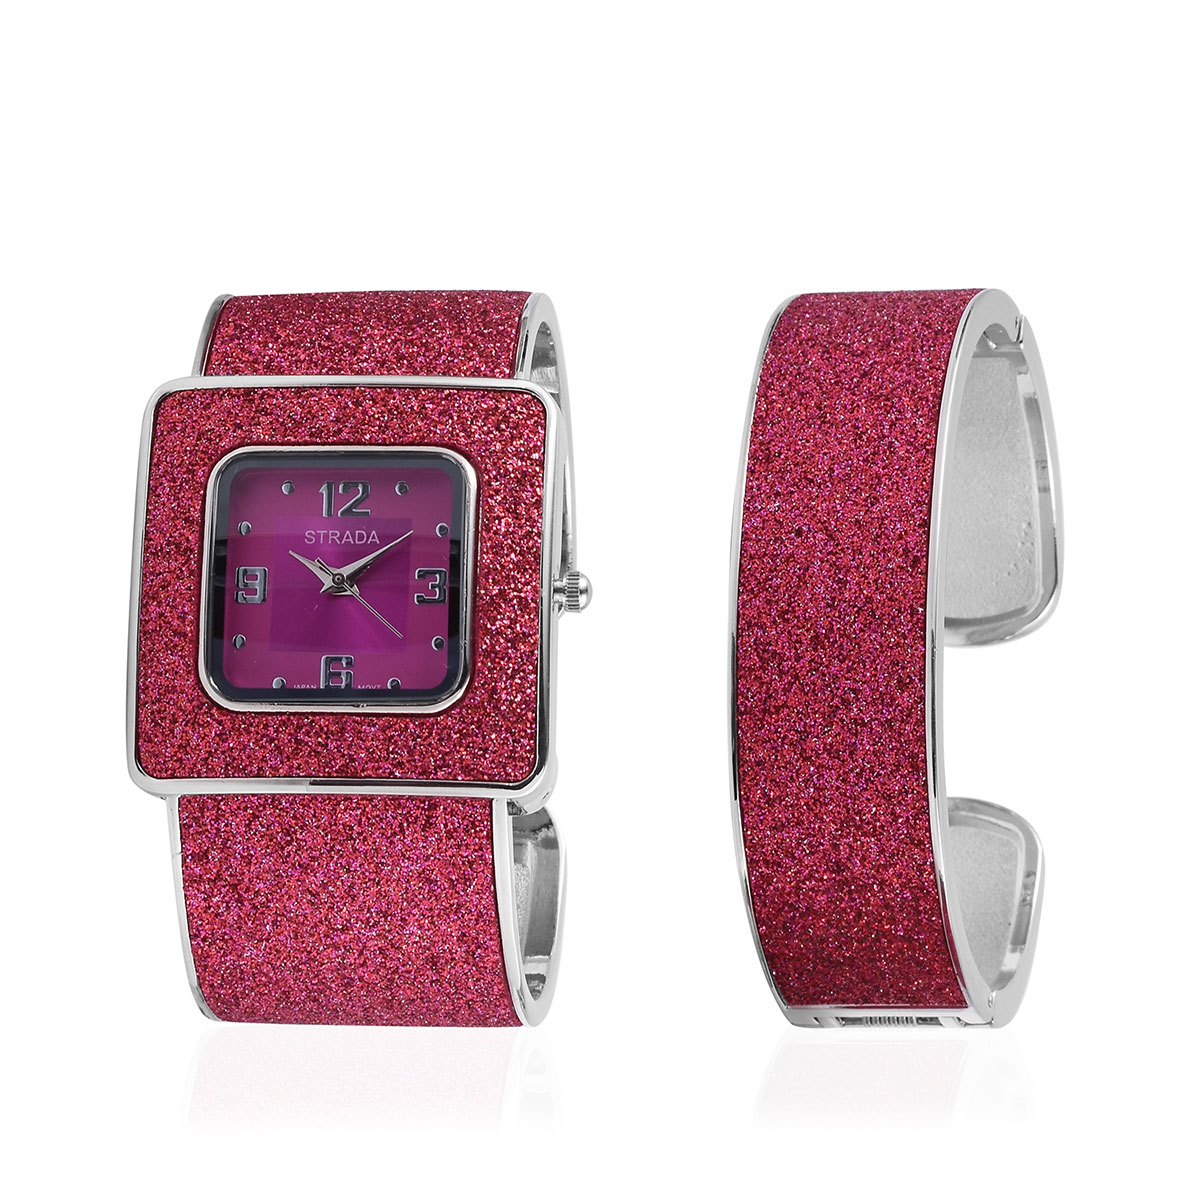 1e0c24058 STRADA Fuchsia Stardust Japanese Movement Cuff Bracelet Watch and Cuff  Bracelet with Stainless Steel Back in Silvertone